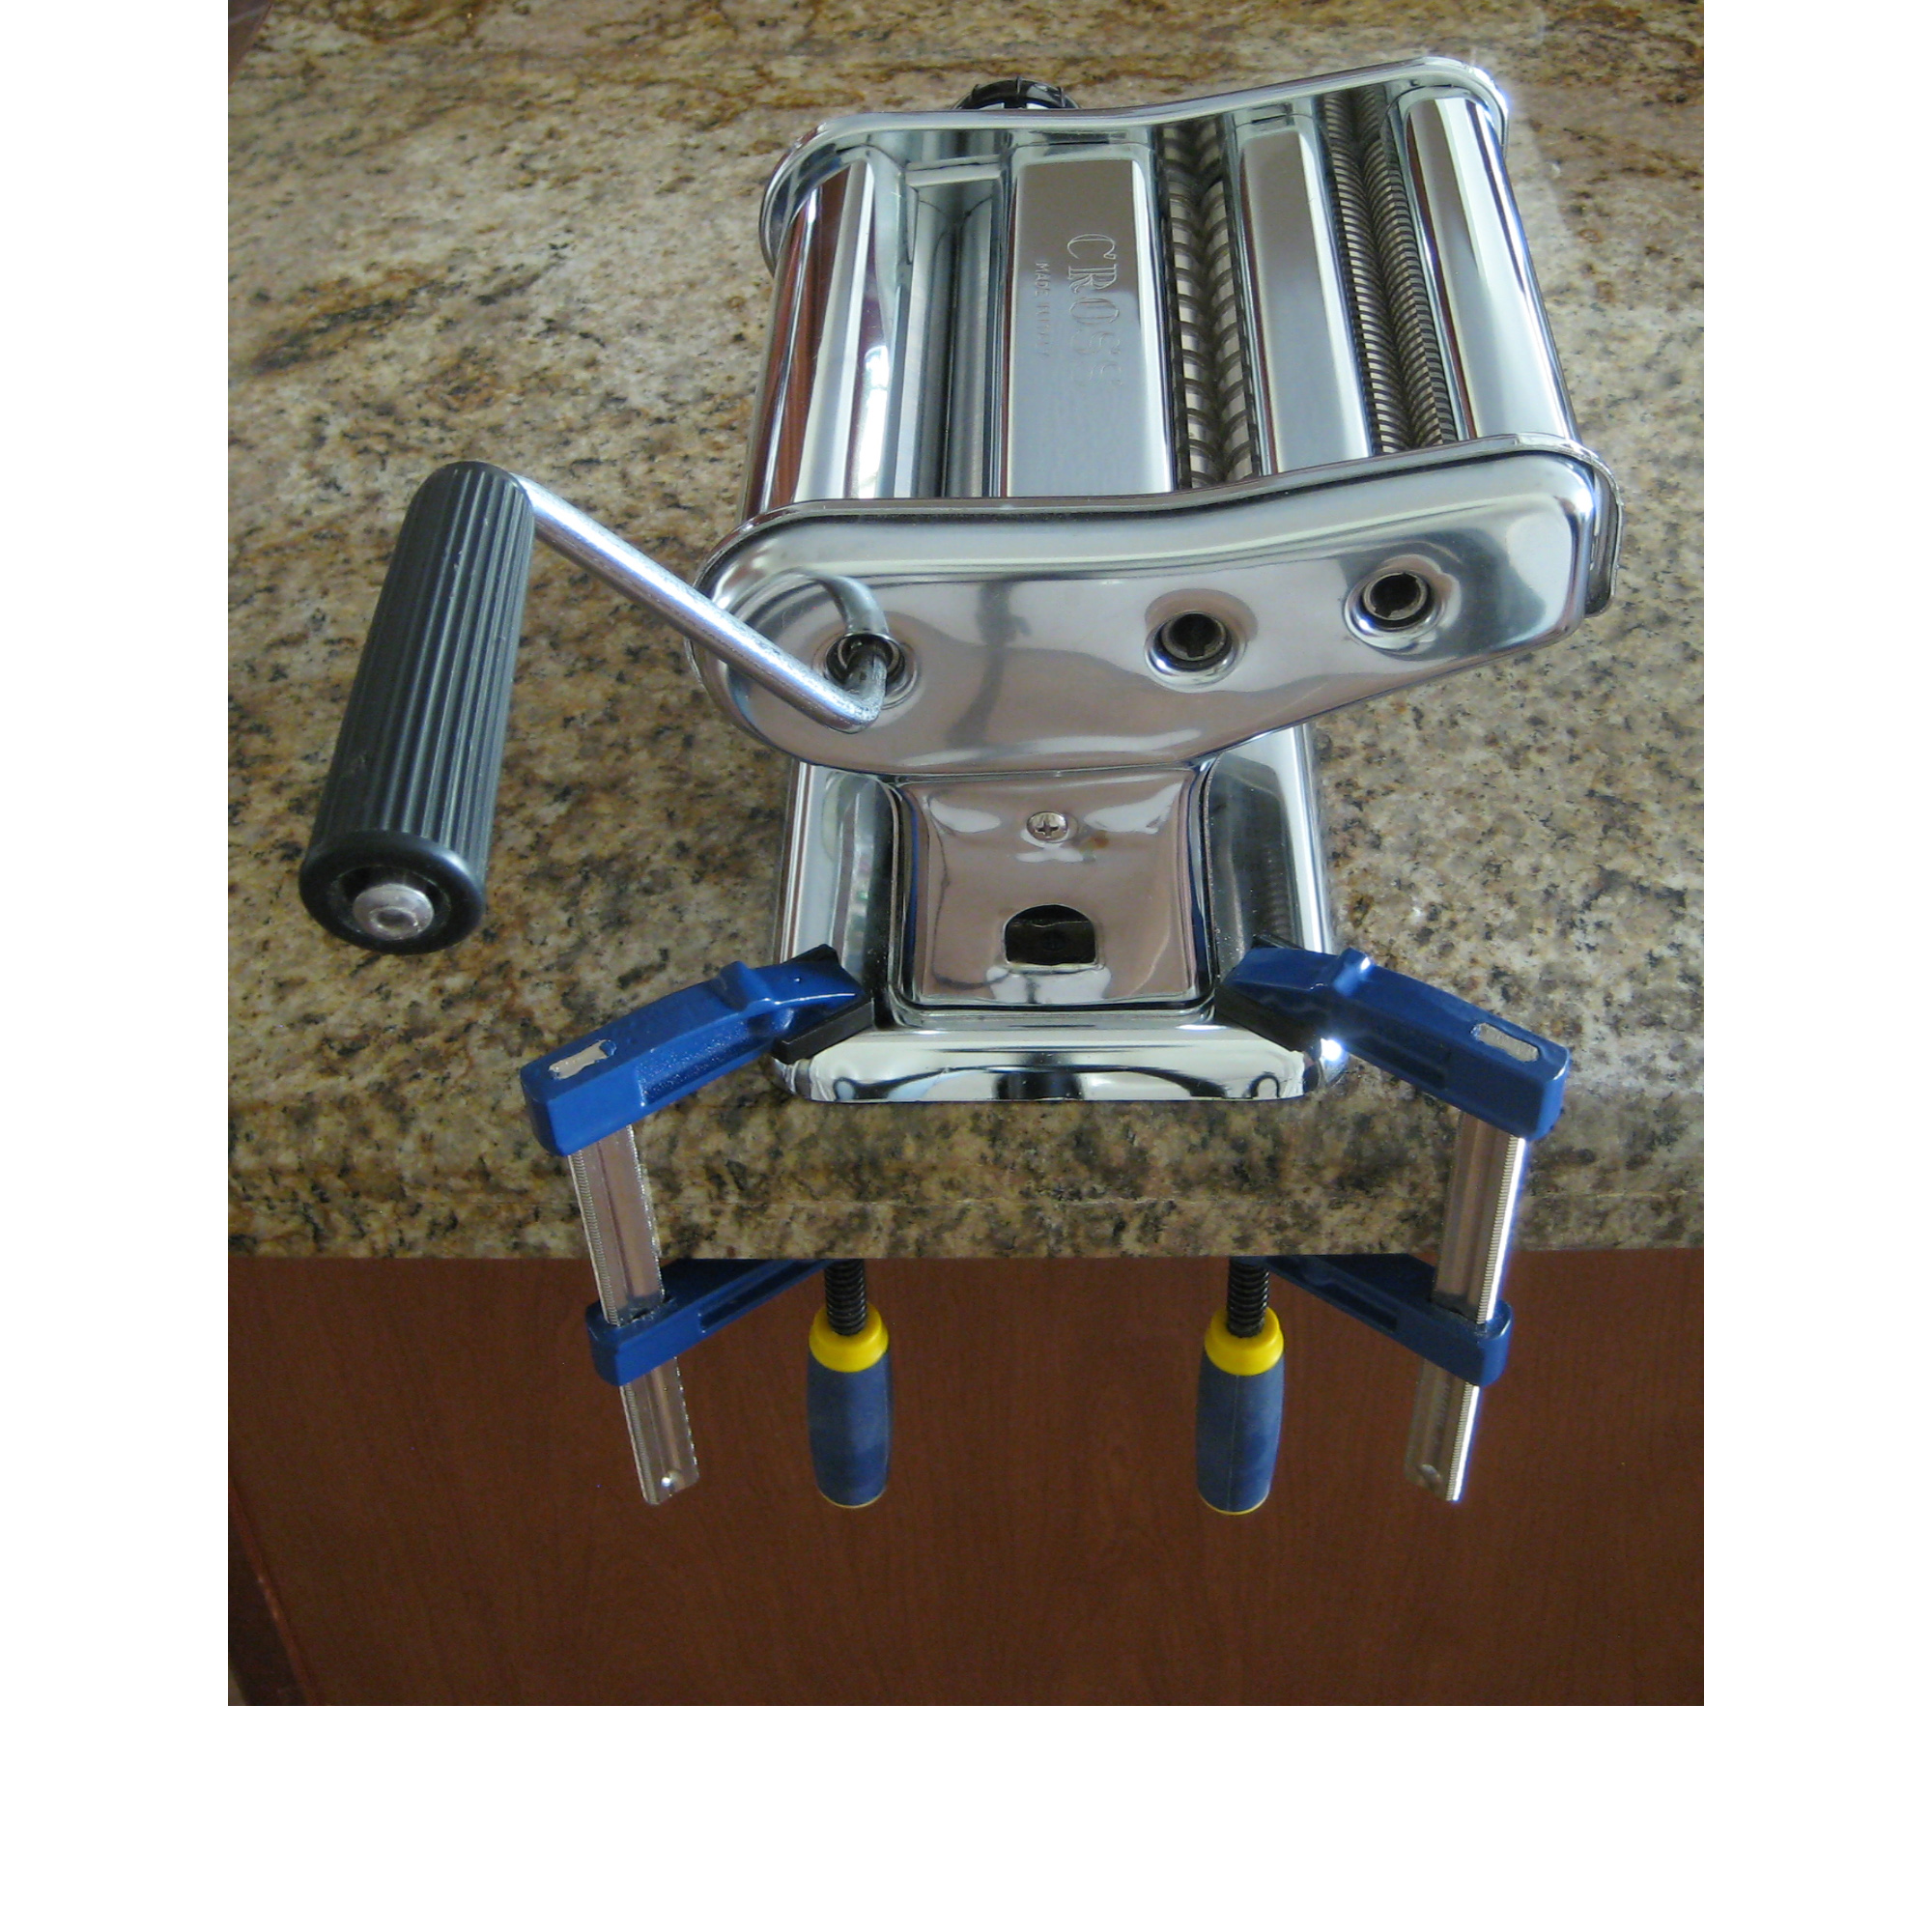 Picture of Pasta Machine Replacement Clamp - Use Mini Bar Clamps Instead!